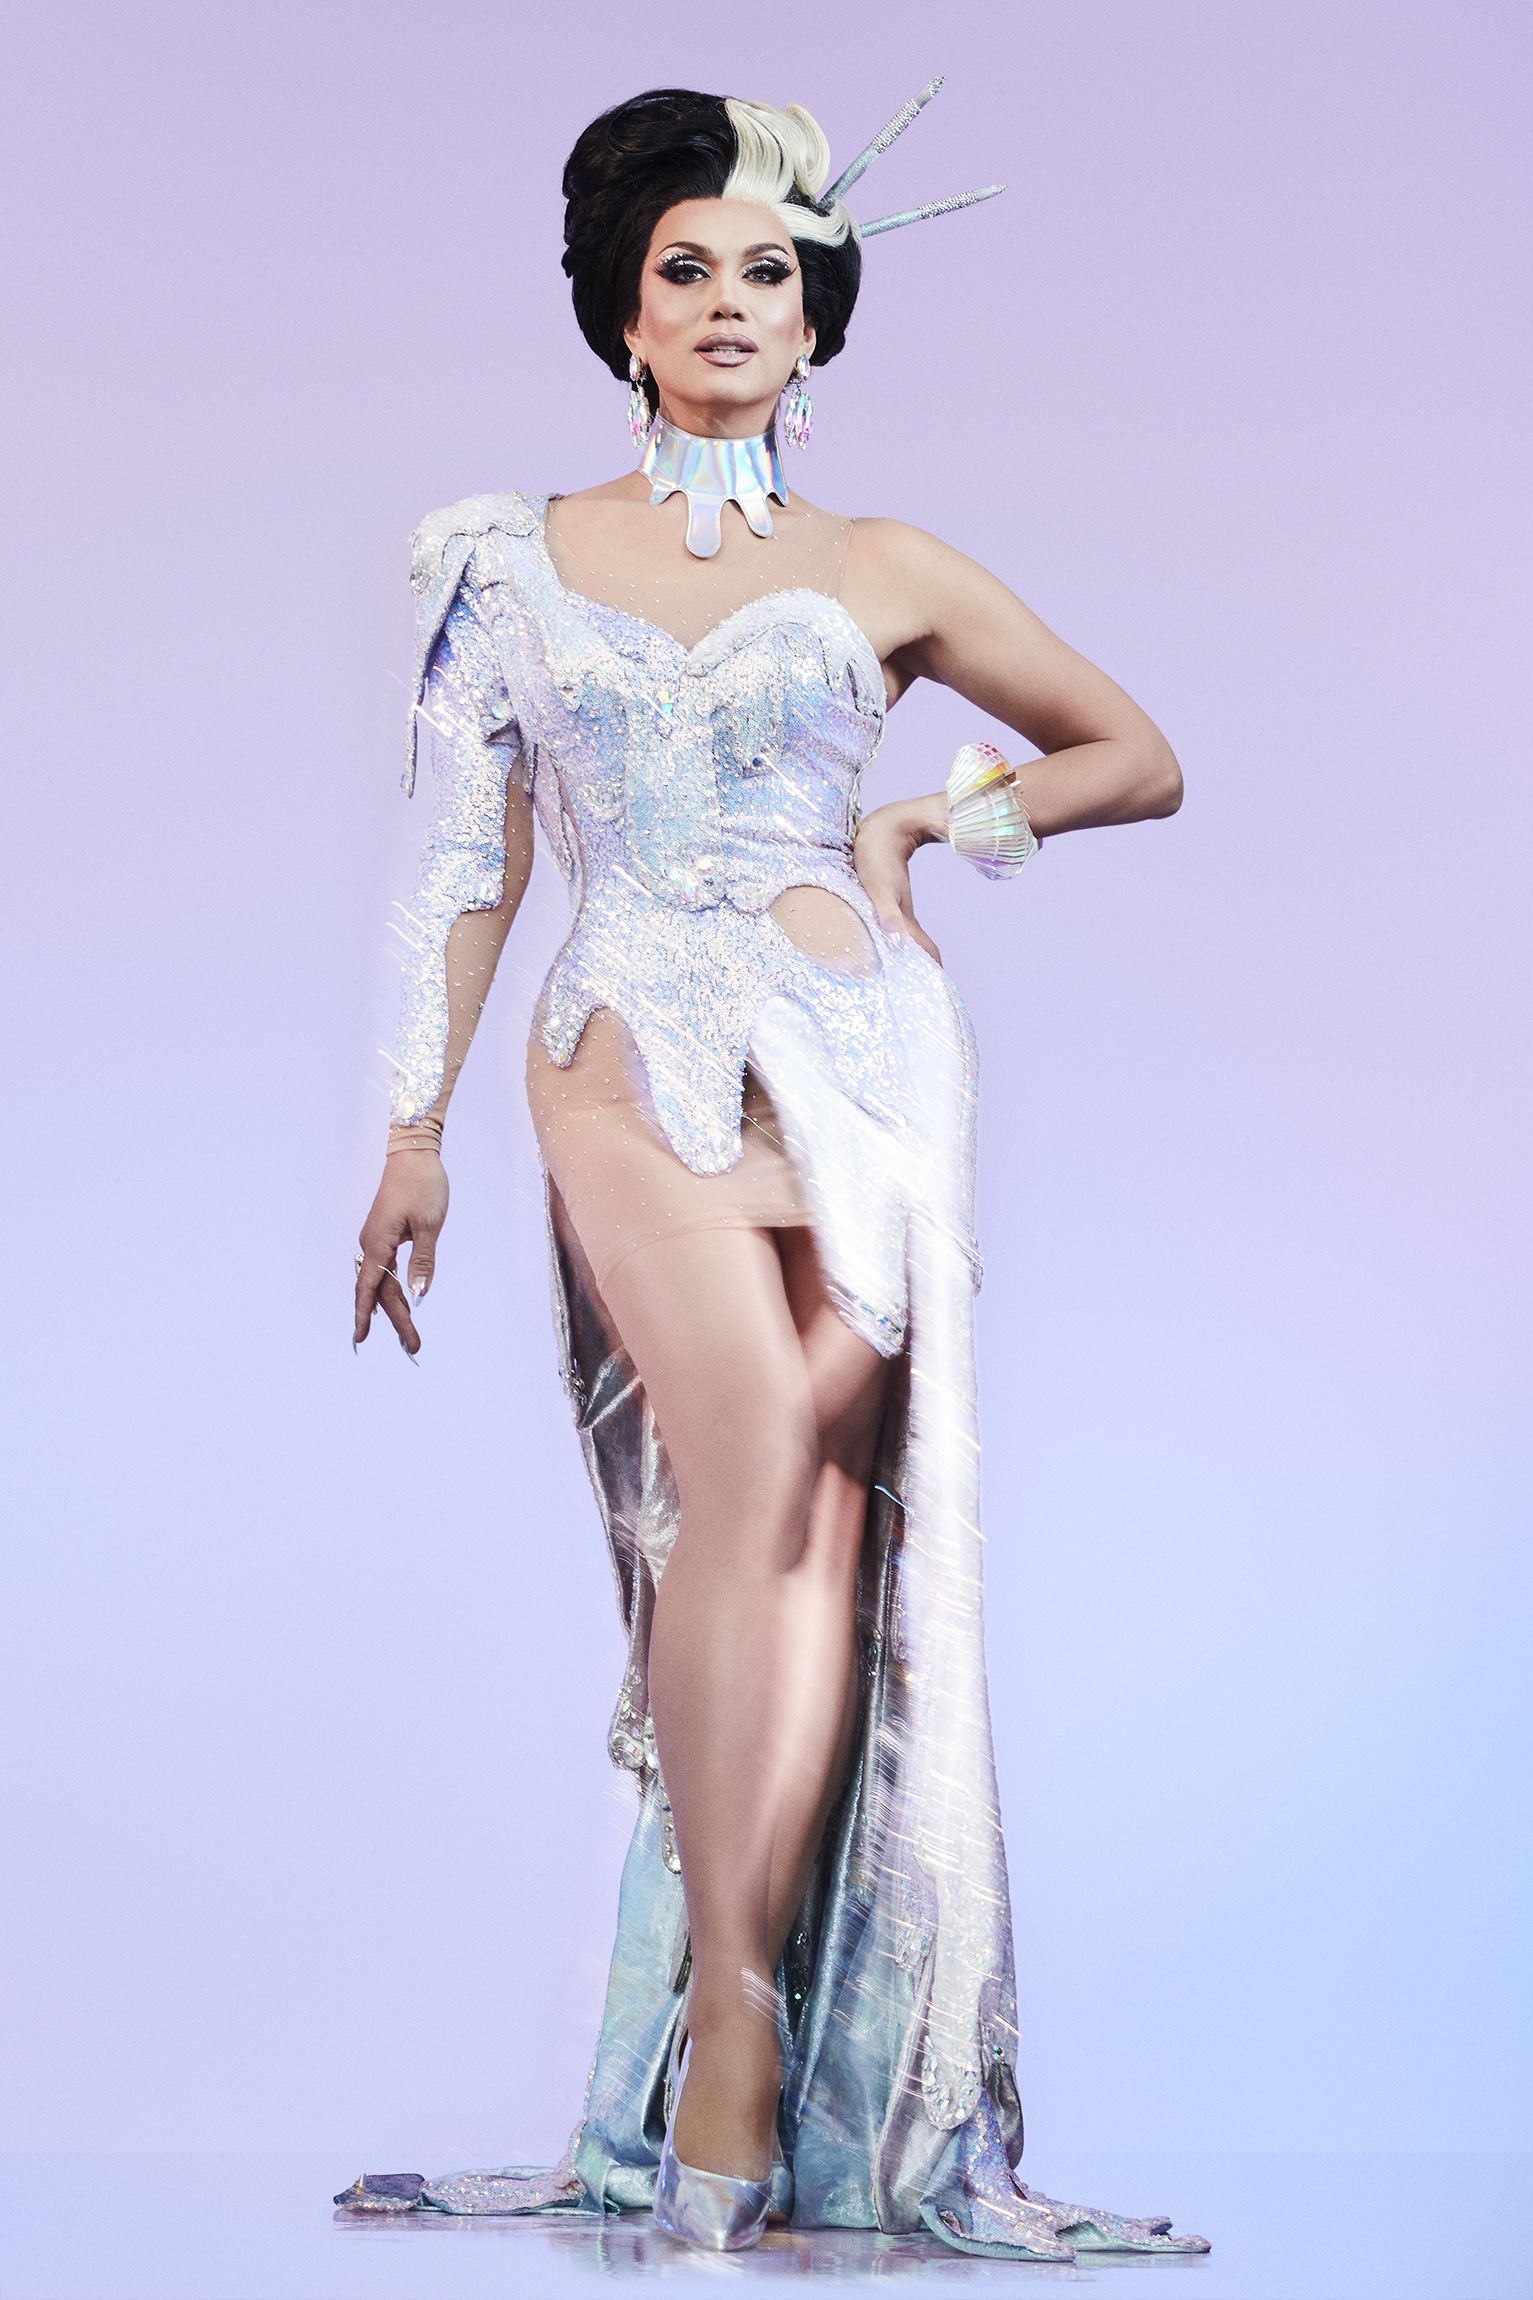 manila luzon as4